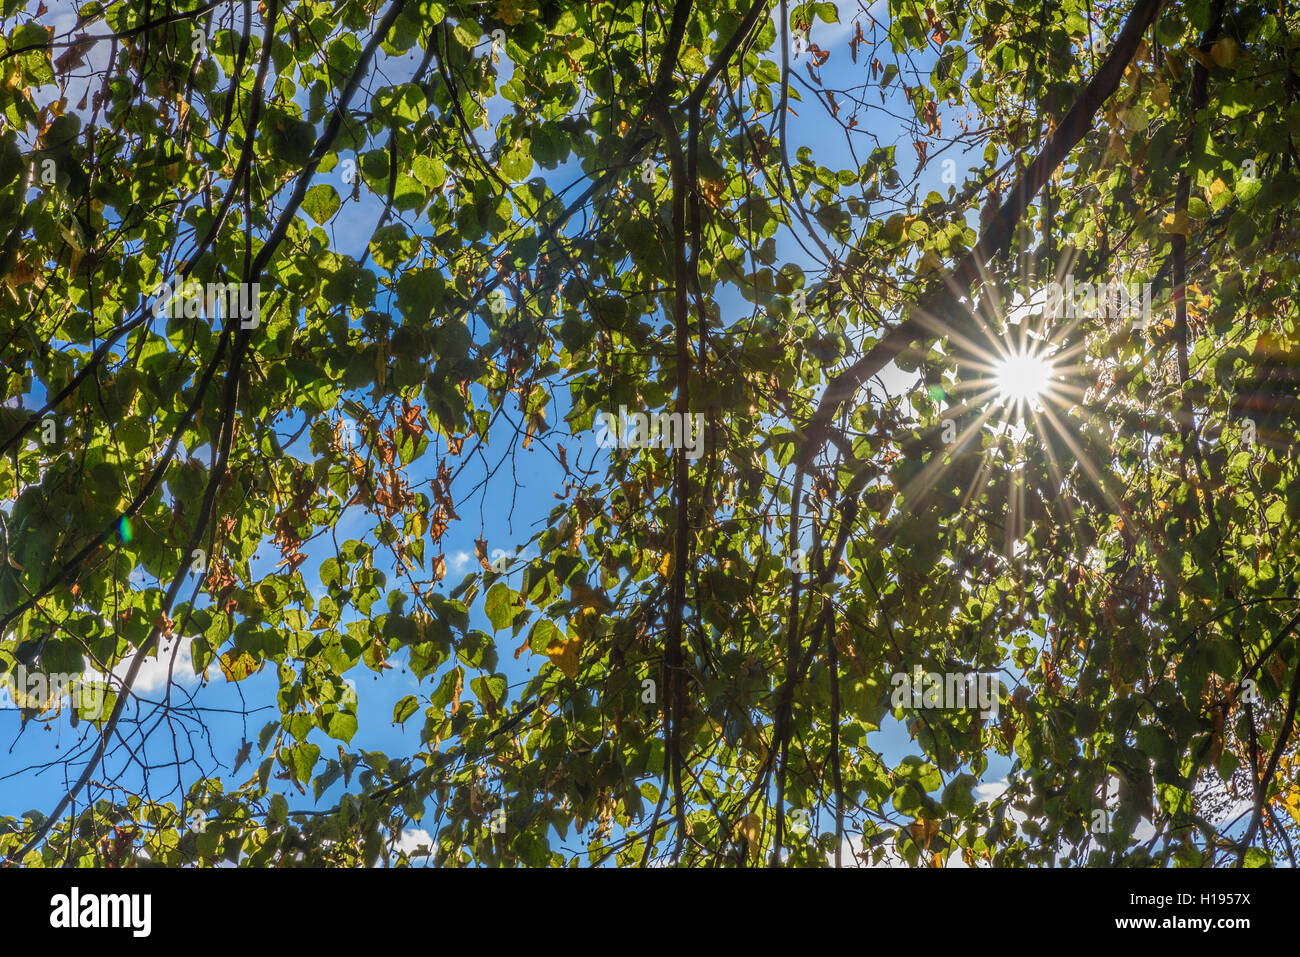 Sunstar through leaves on a tree with blue sky background - Stock Image